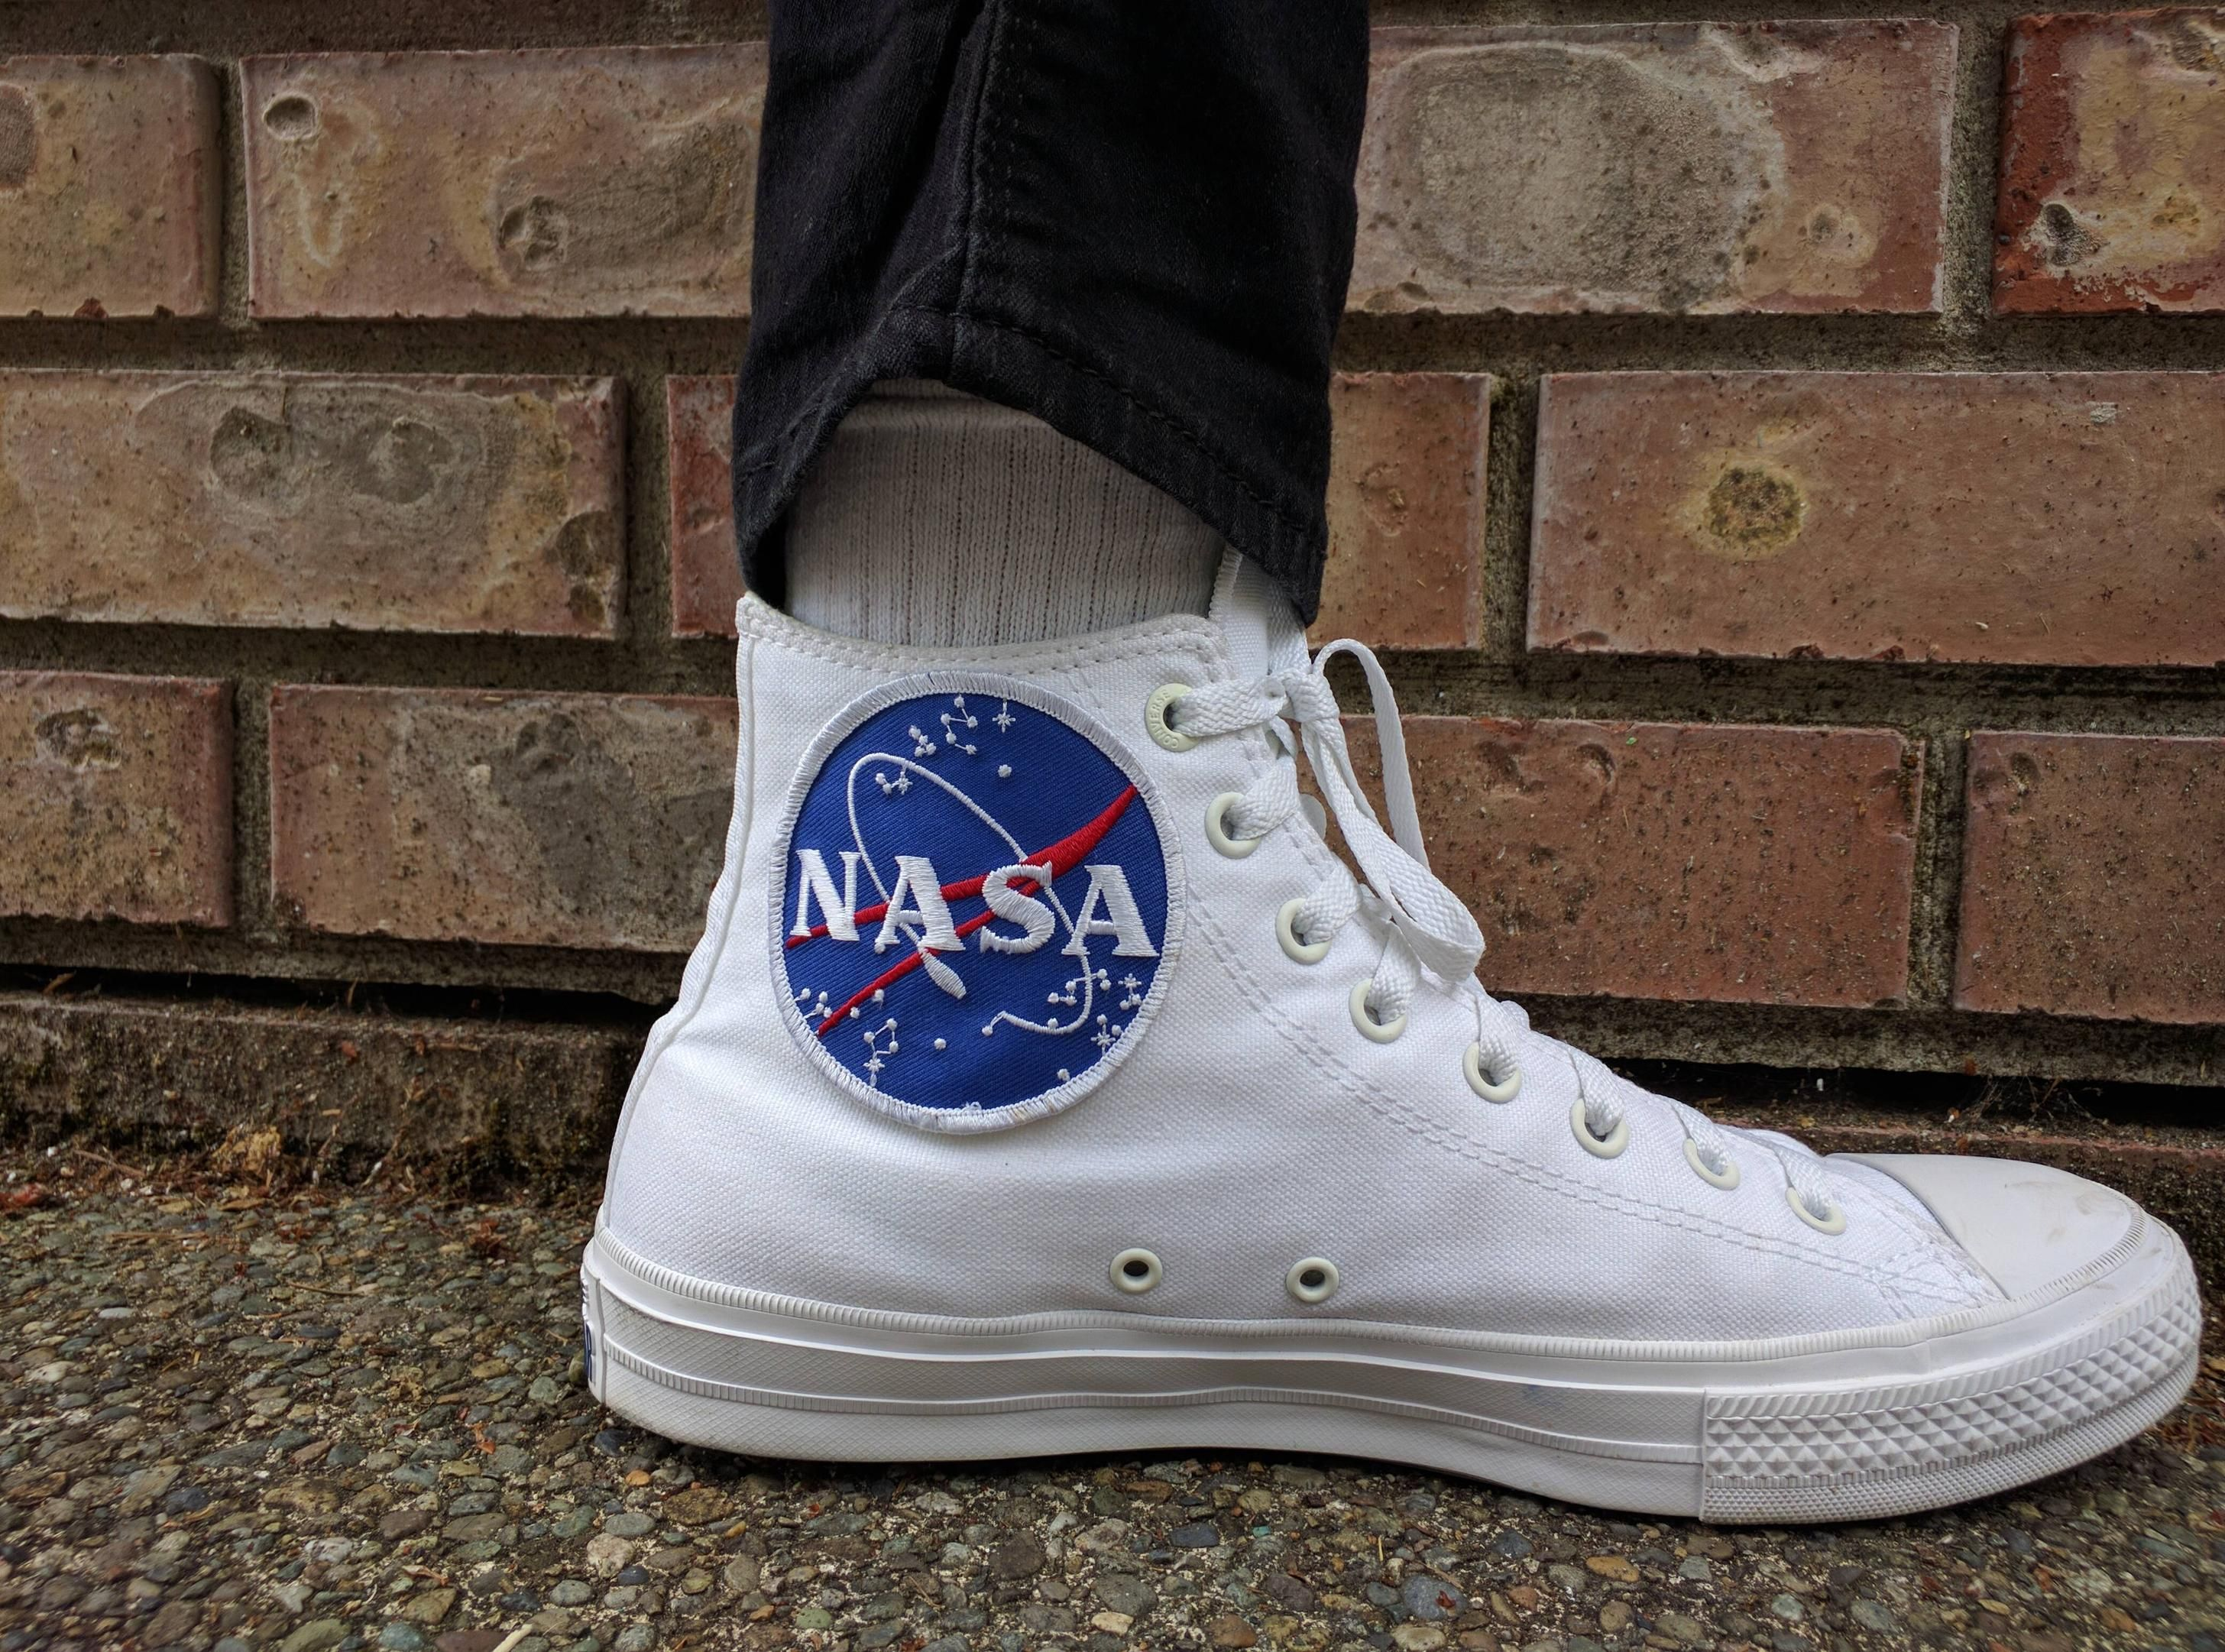 [PICKUP] Chuck 2 with custom nasa patch. Was inspired